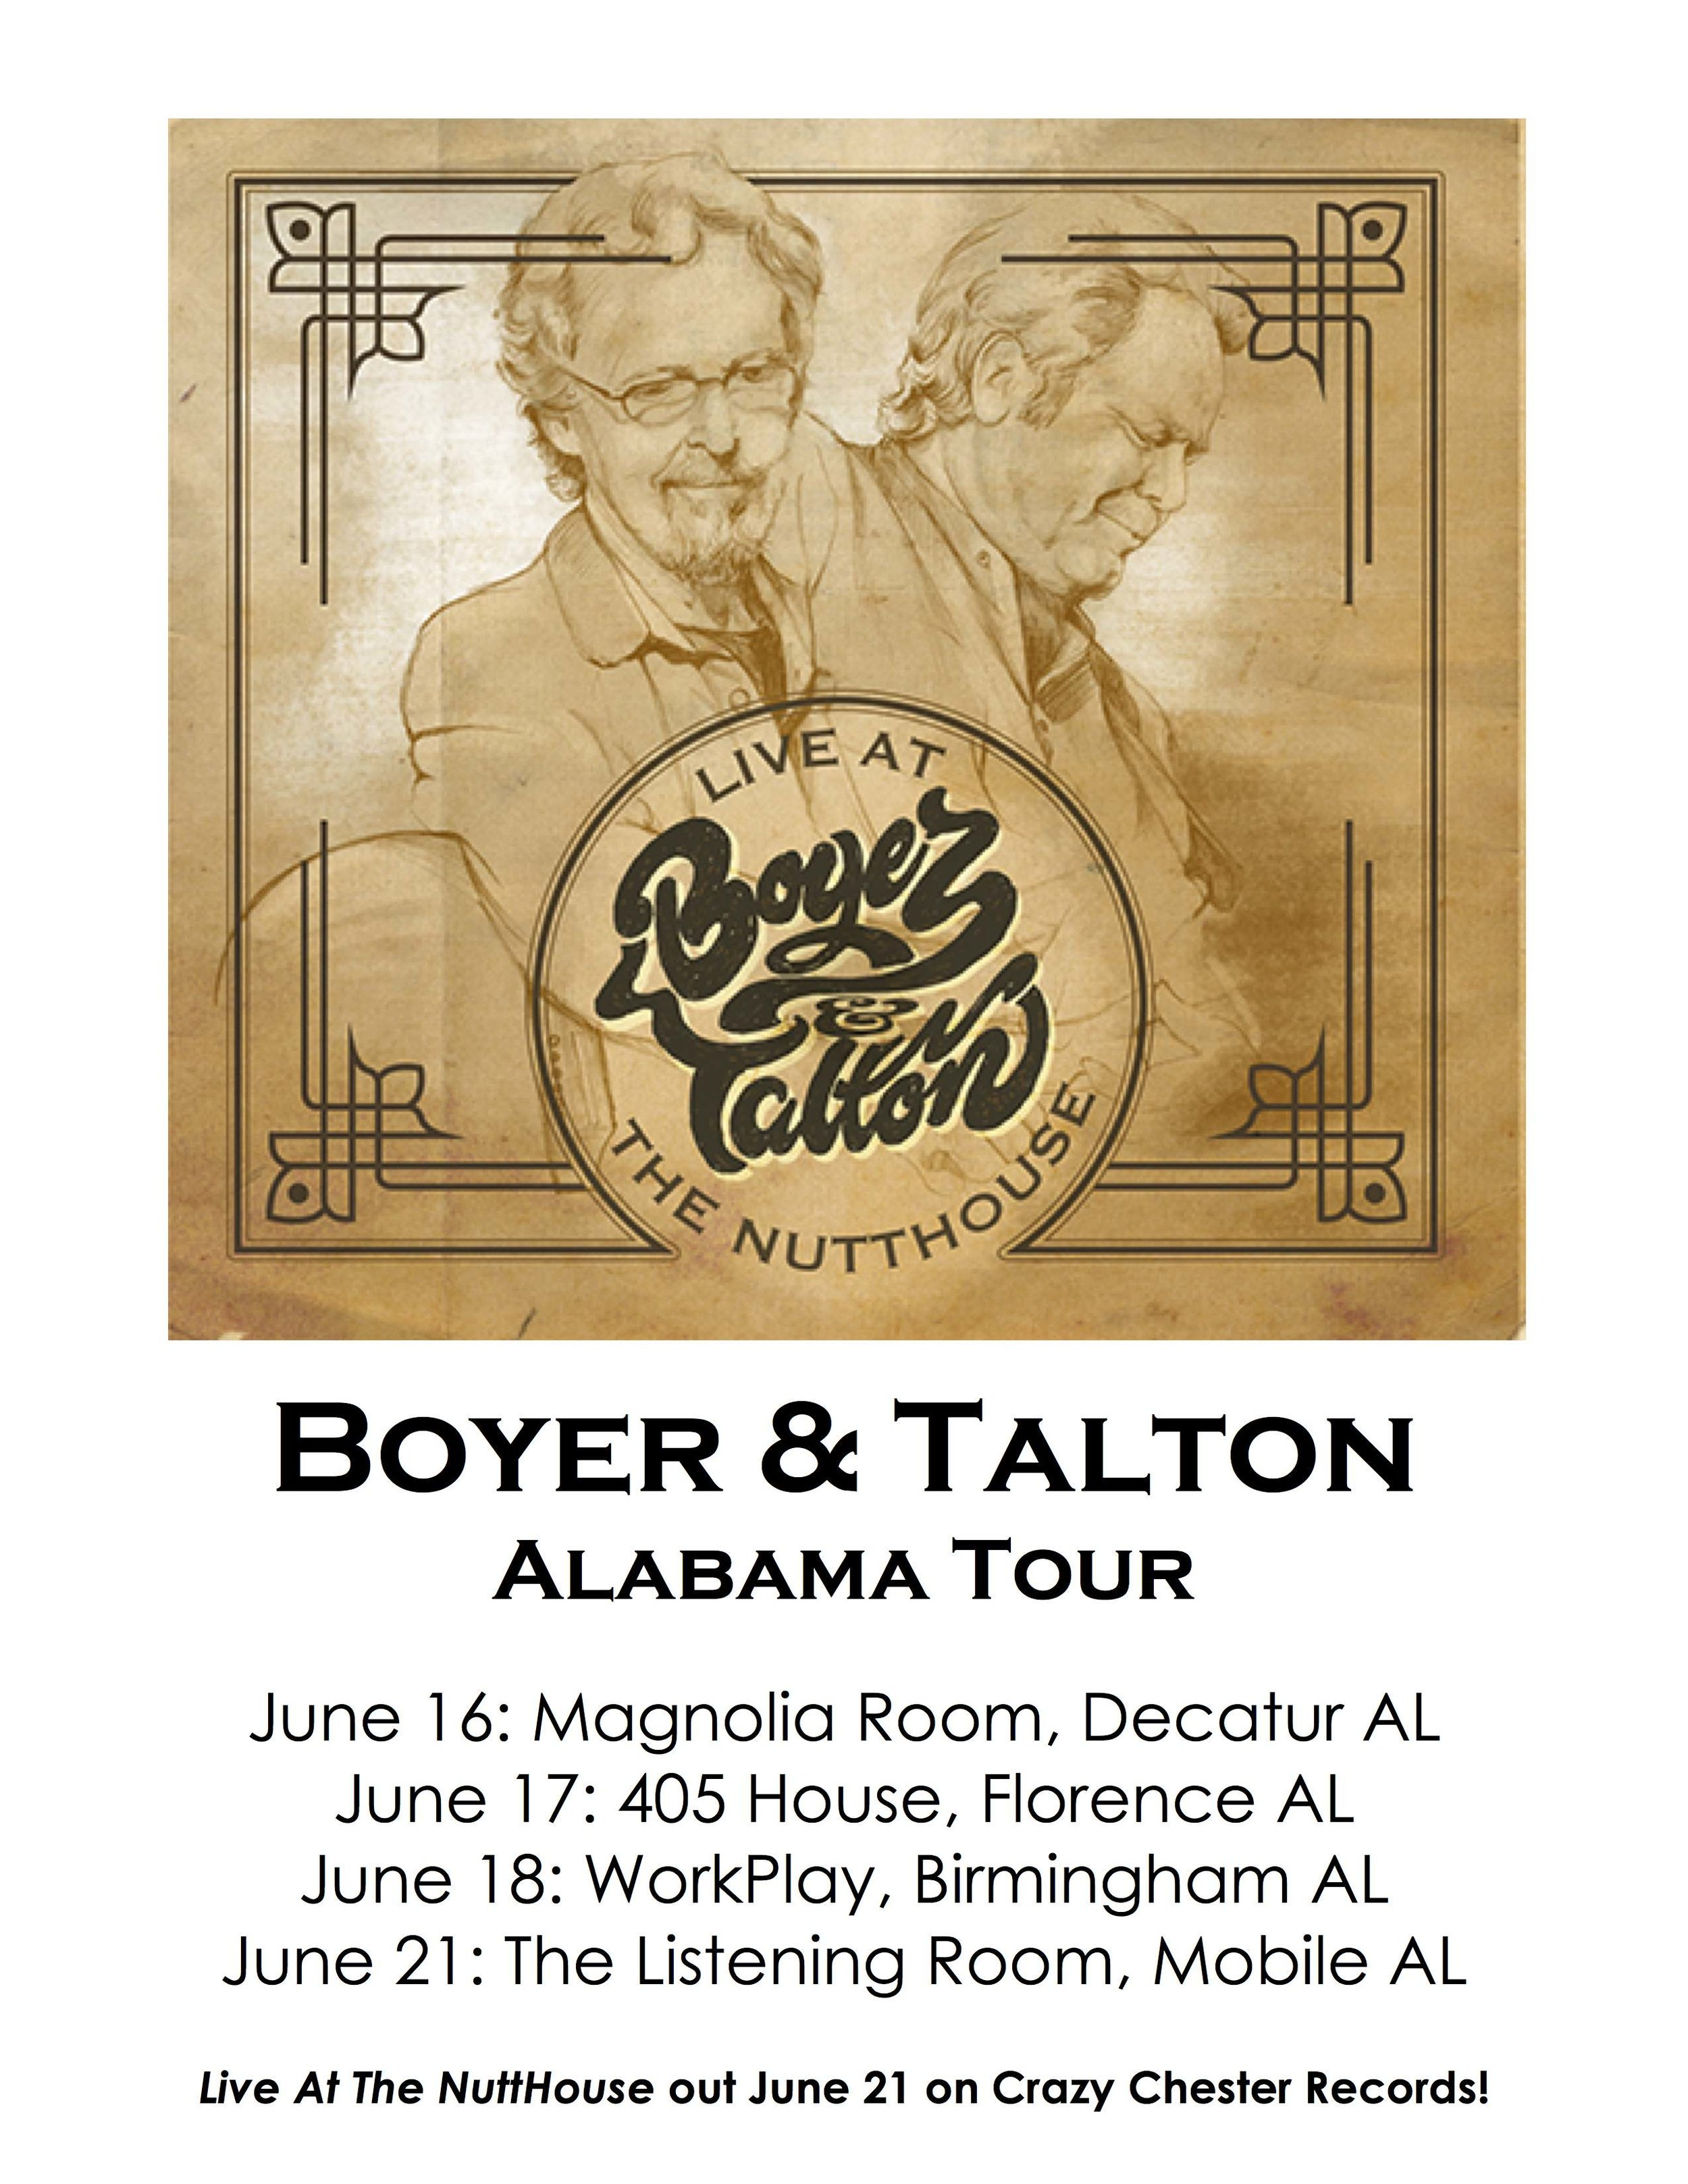 boyer-talton-tour-lores